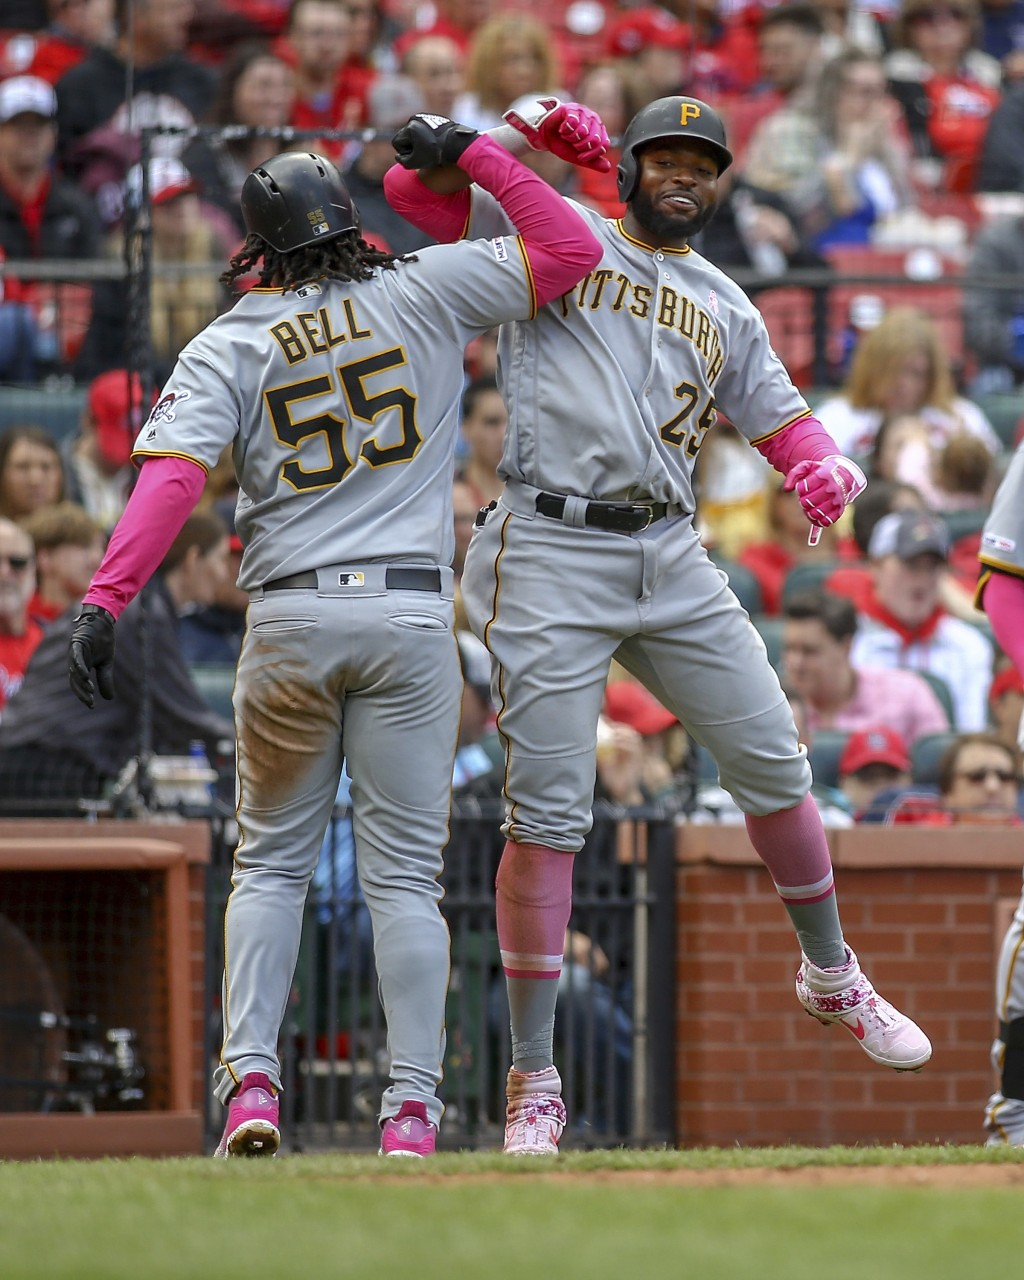 Pittsburgh Pirates' Josh Bell, left, celebrates with teammate Gregory Polanco after hitting a three-run home run during the seventh inning of a baseba